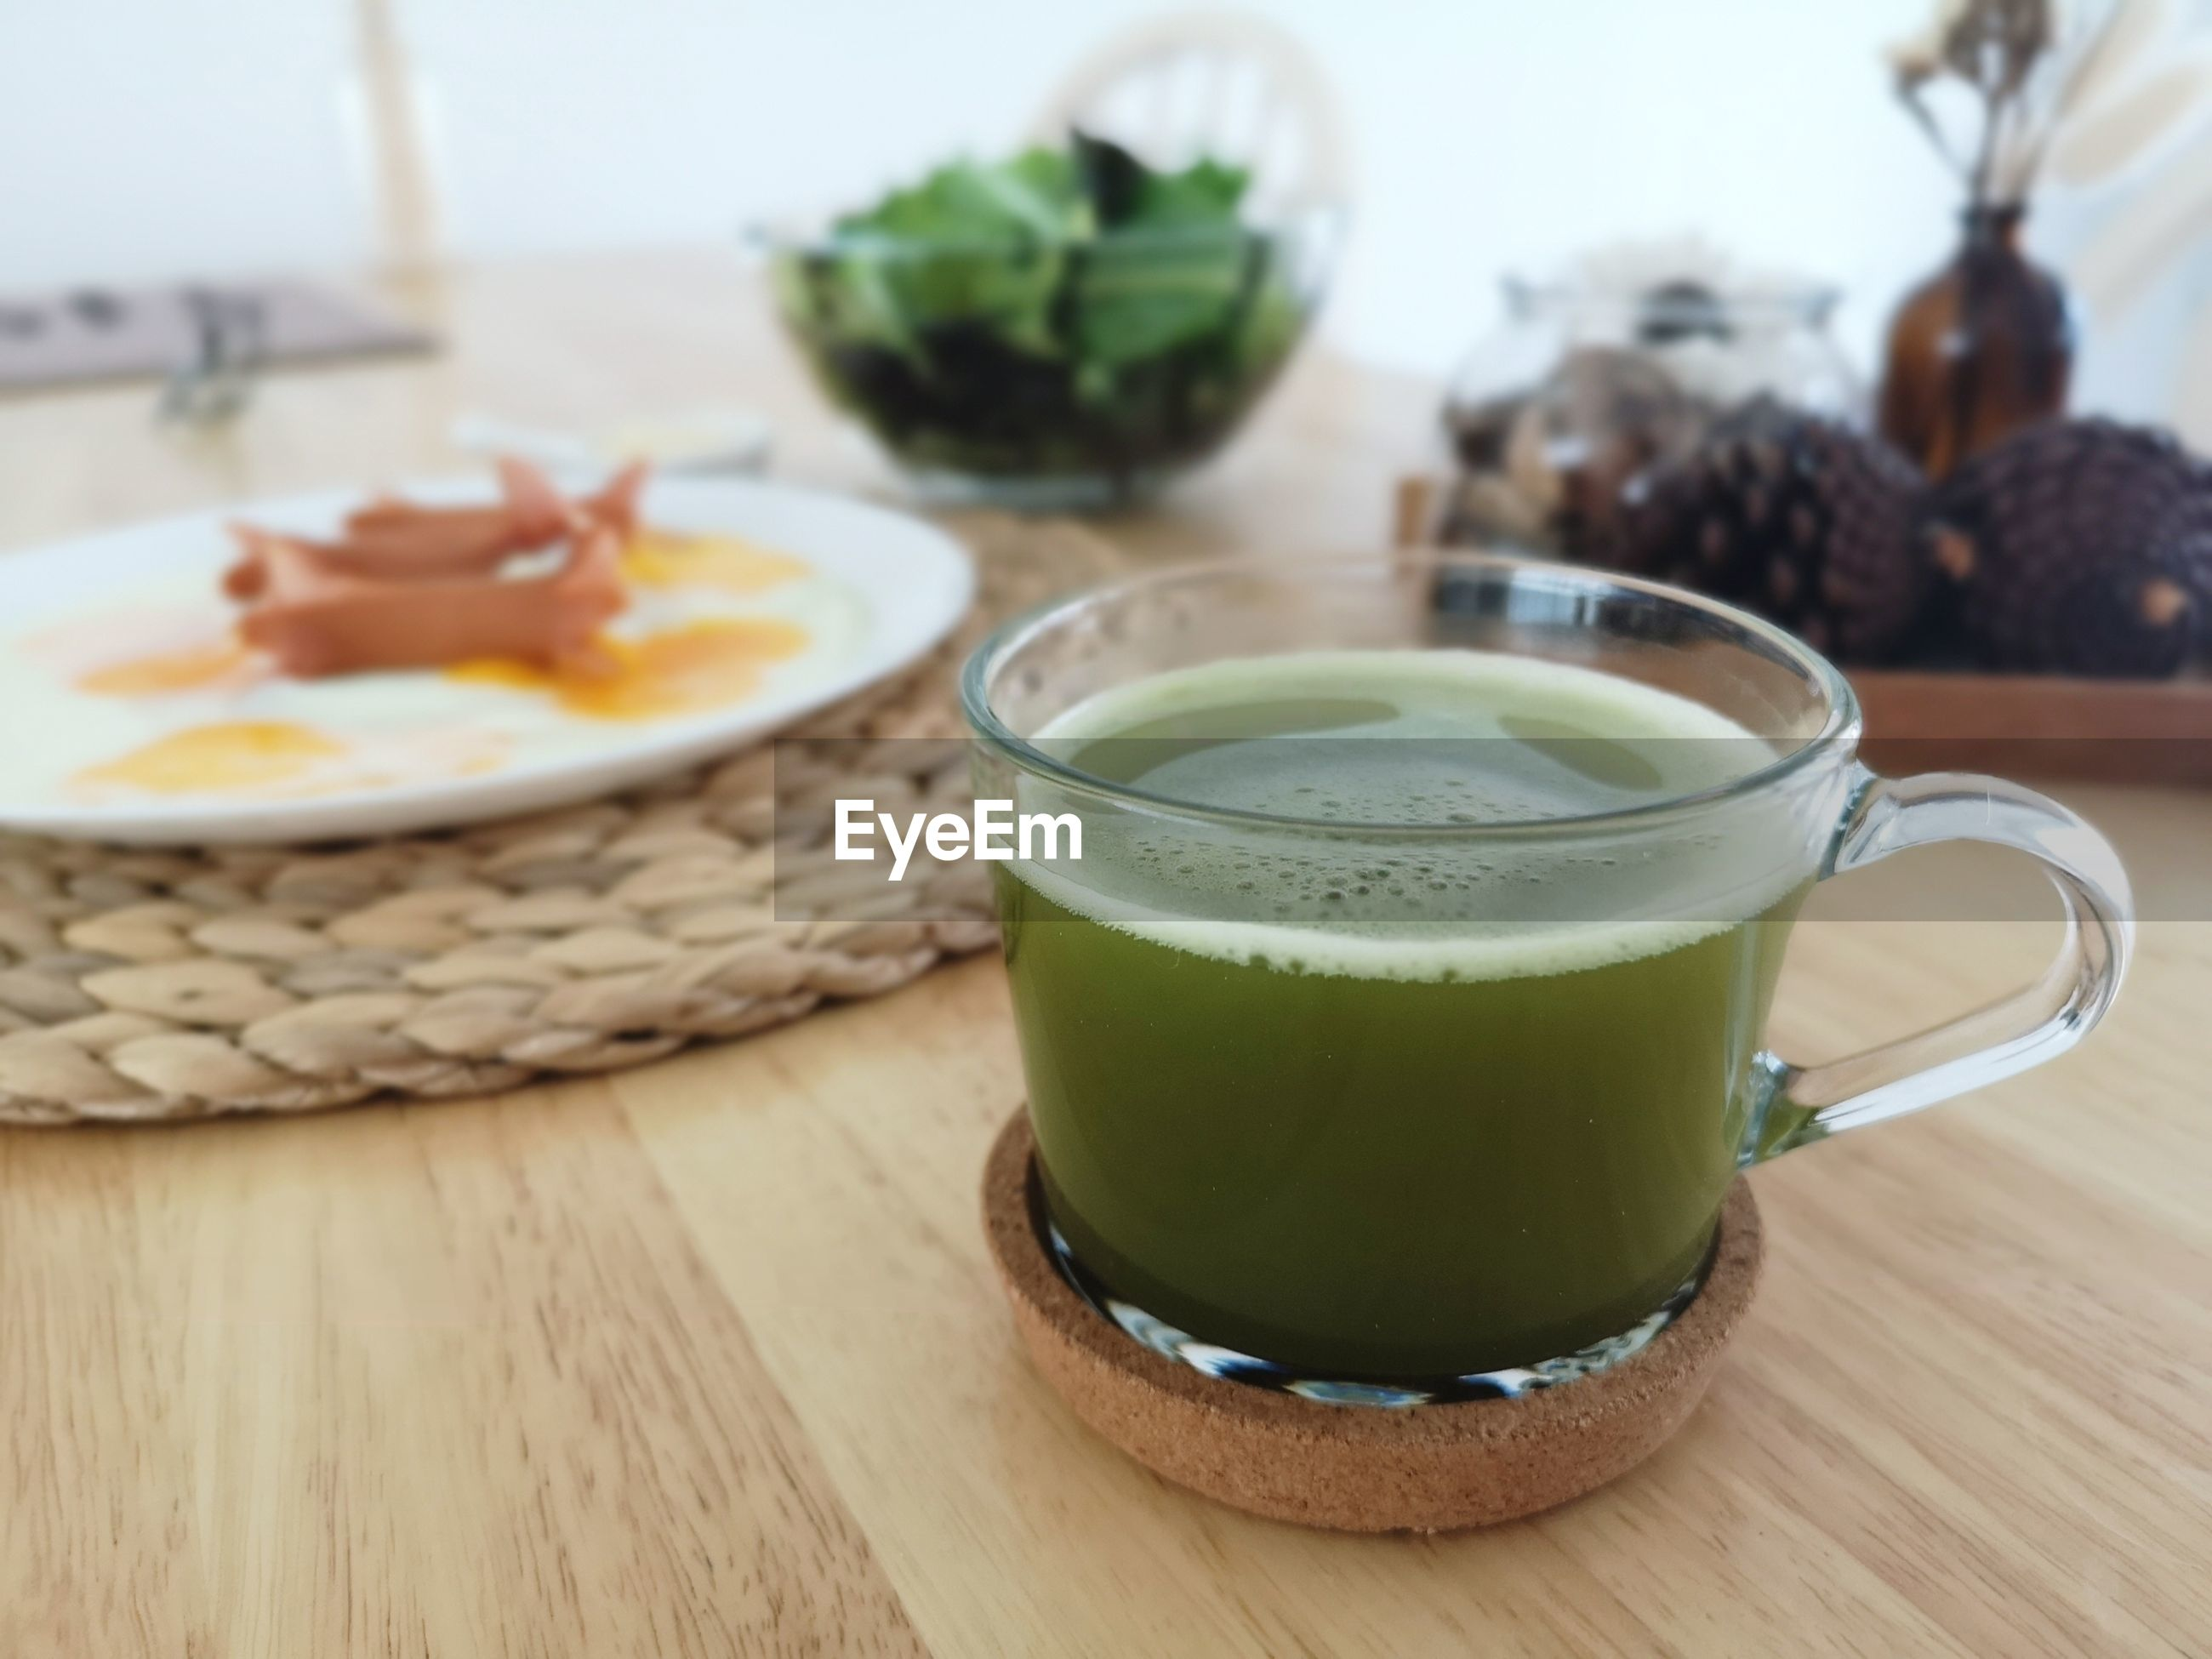 CLOSE-UP OF DRINK WITH JUICE ON TABLE